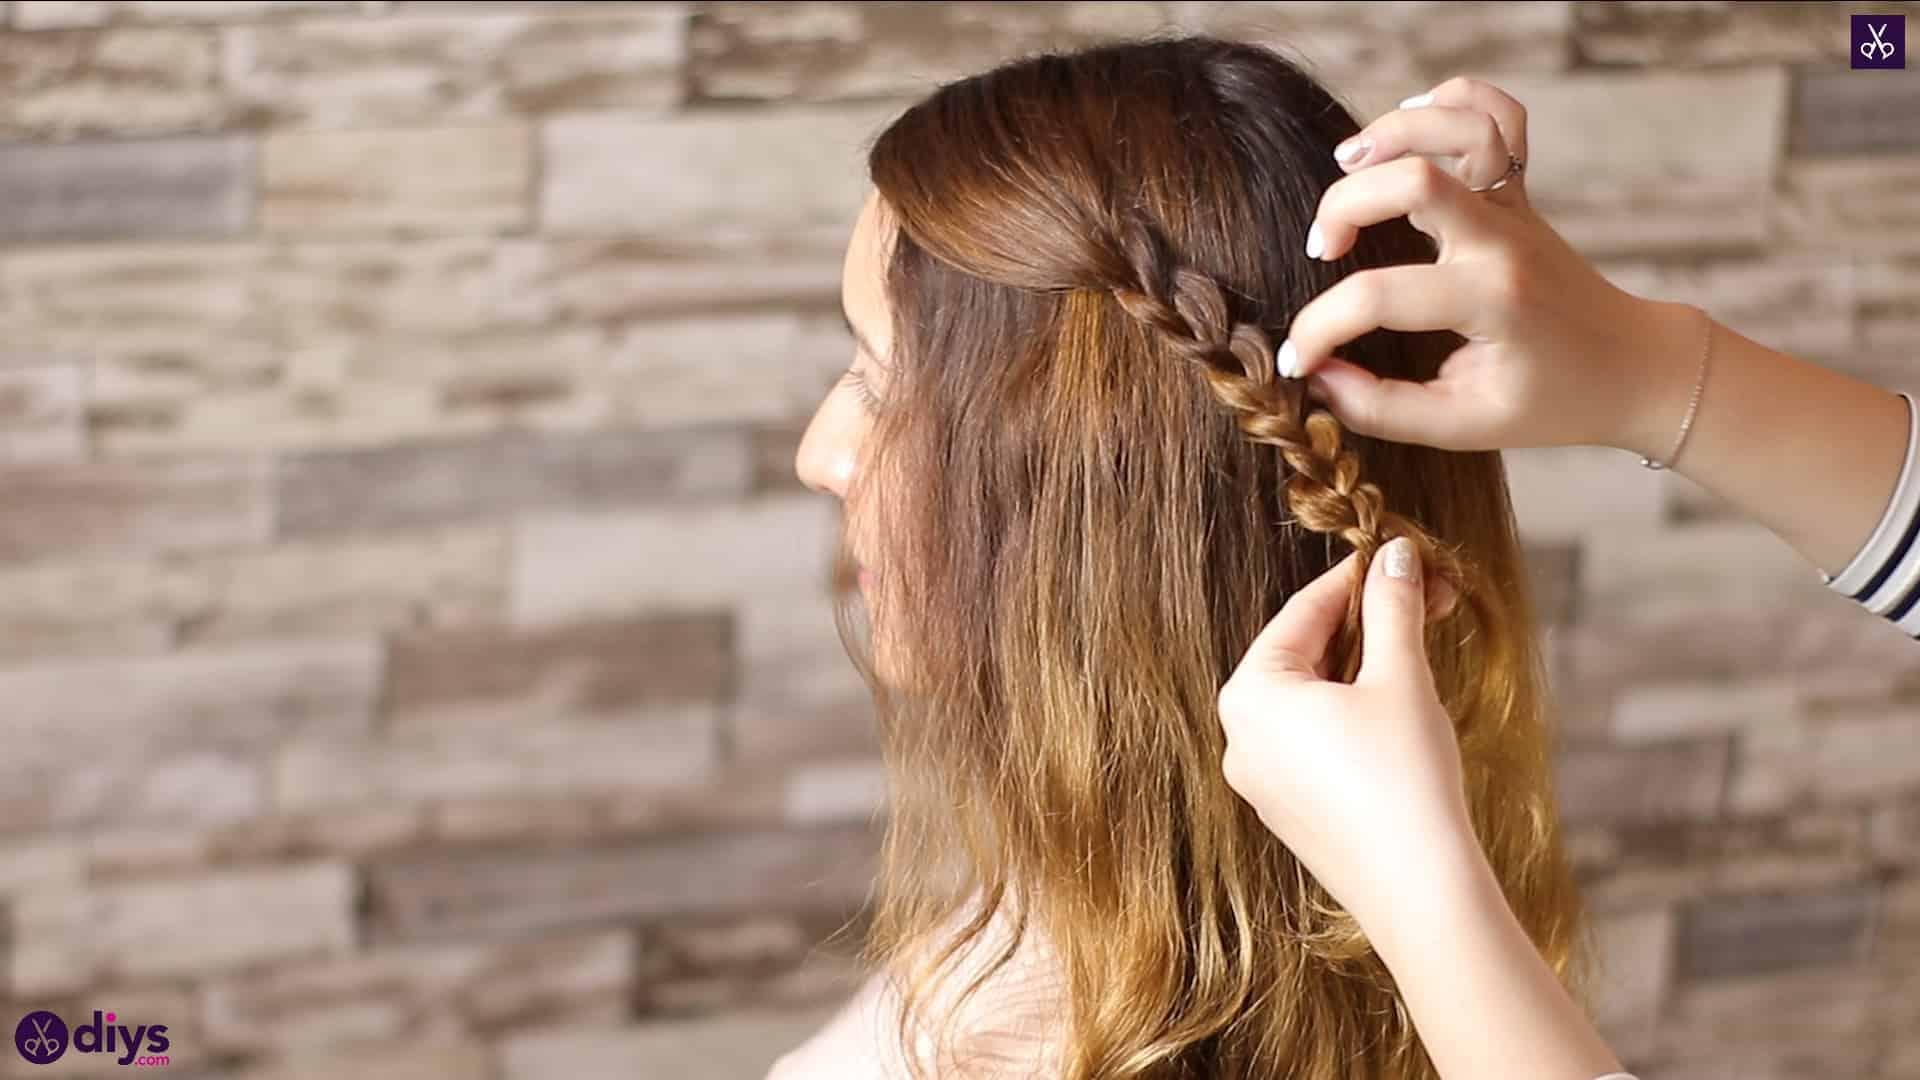 Half up, half down hairstyle for spring12